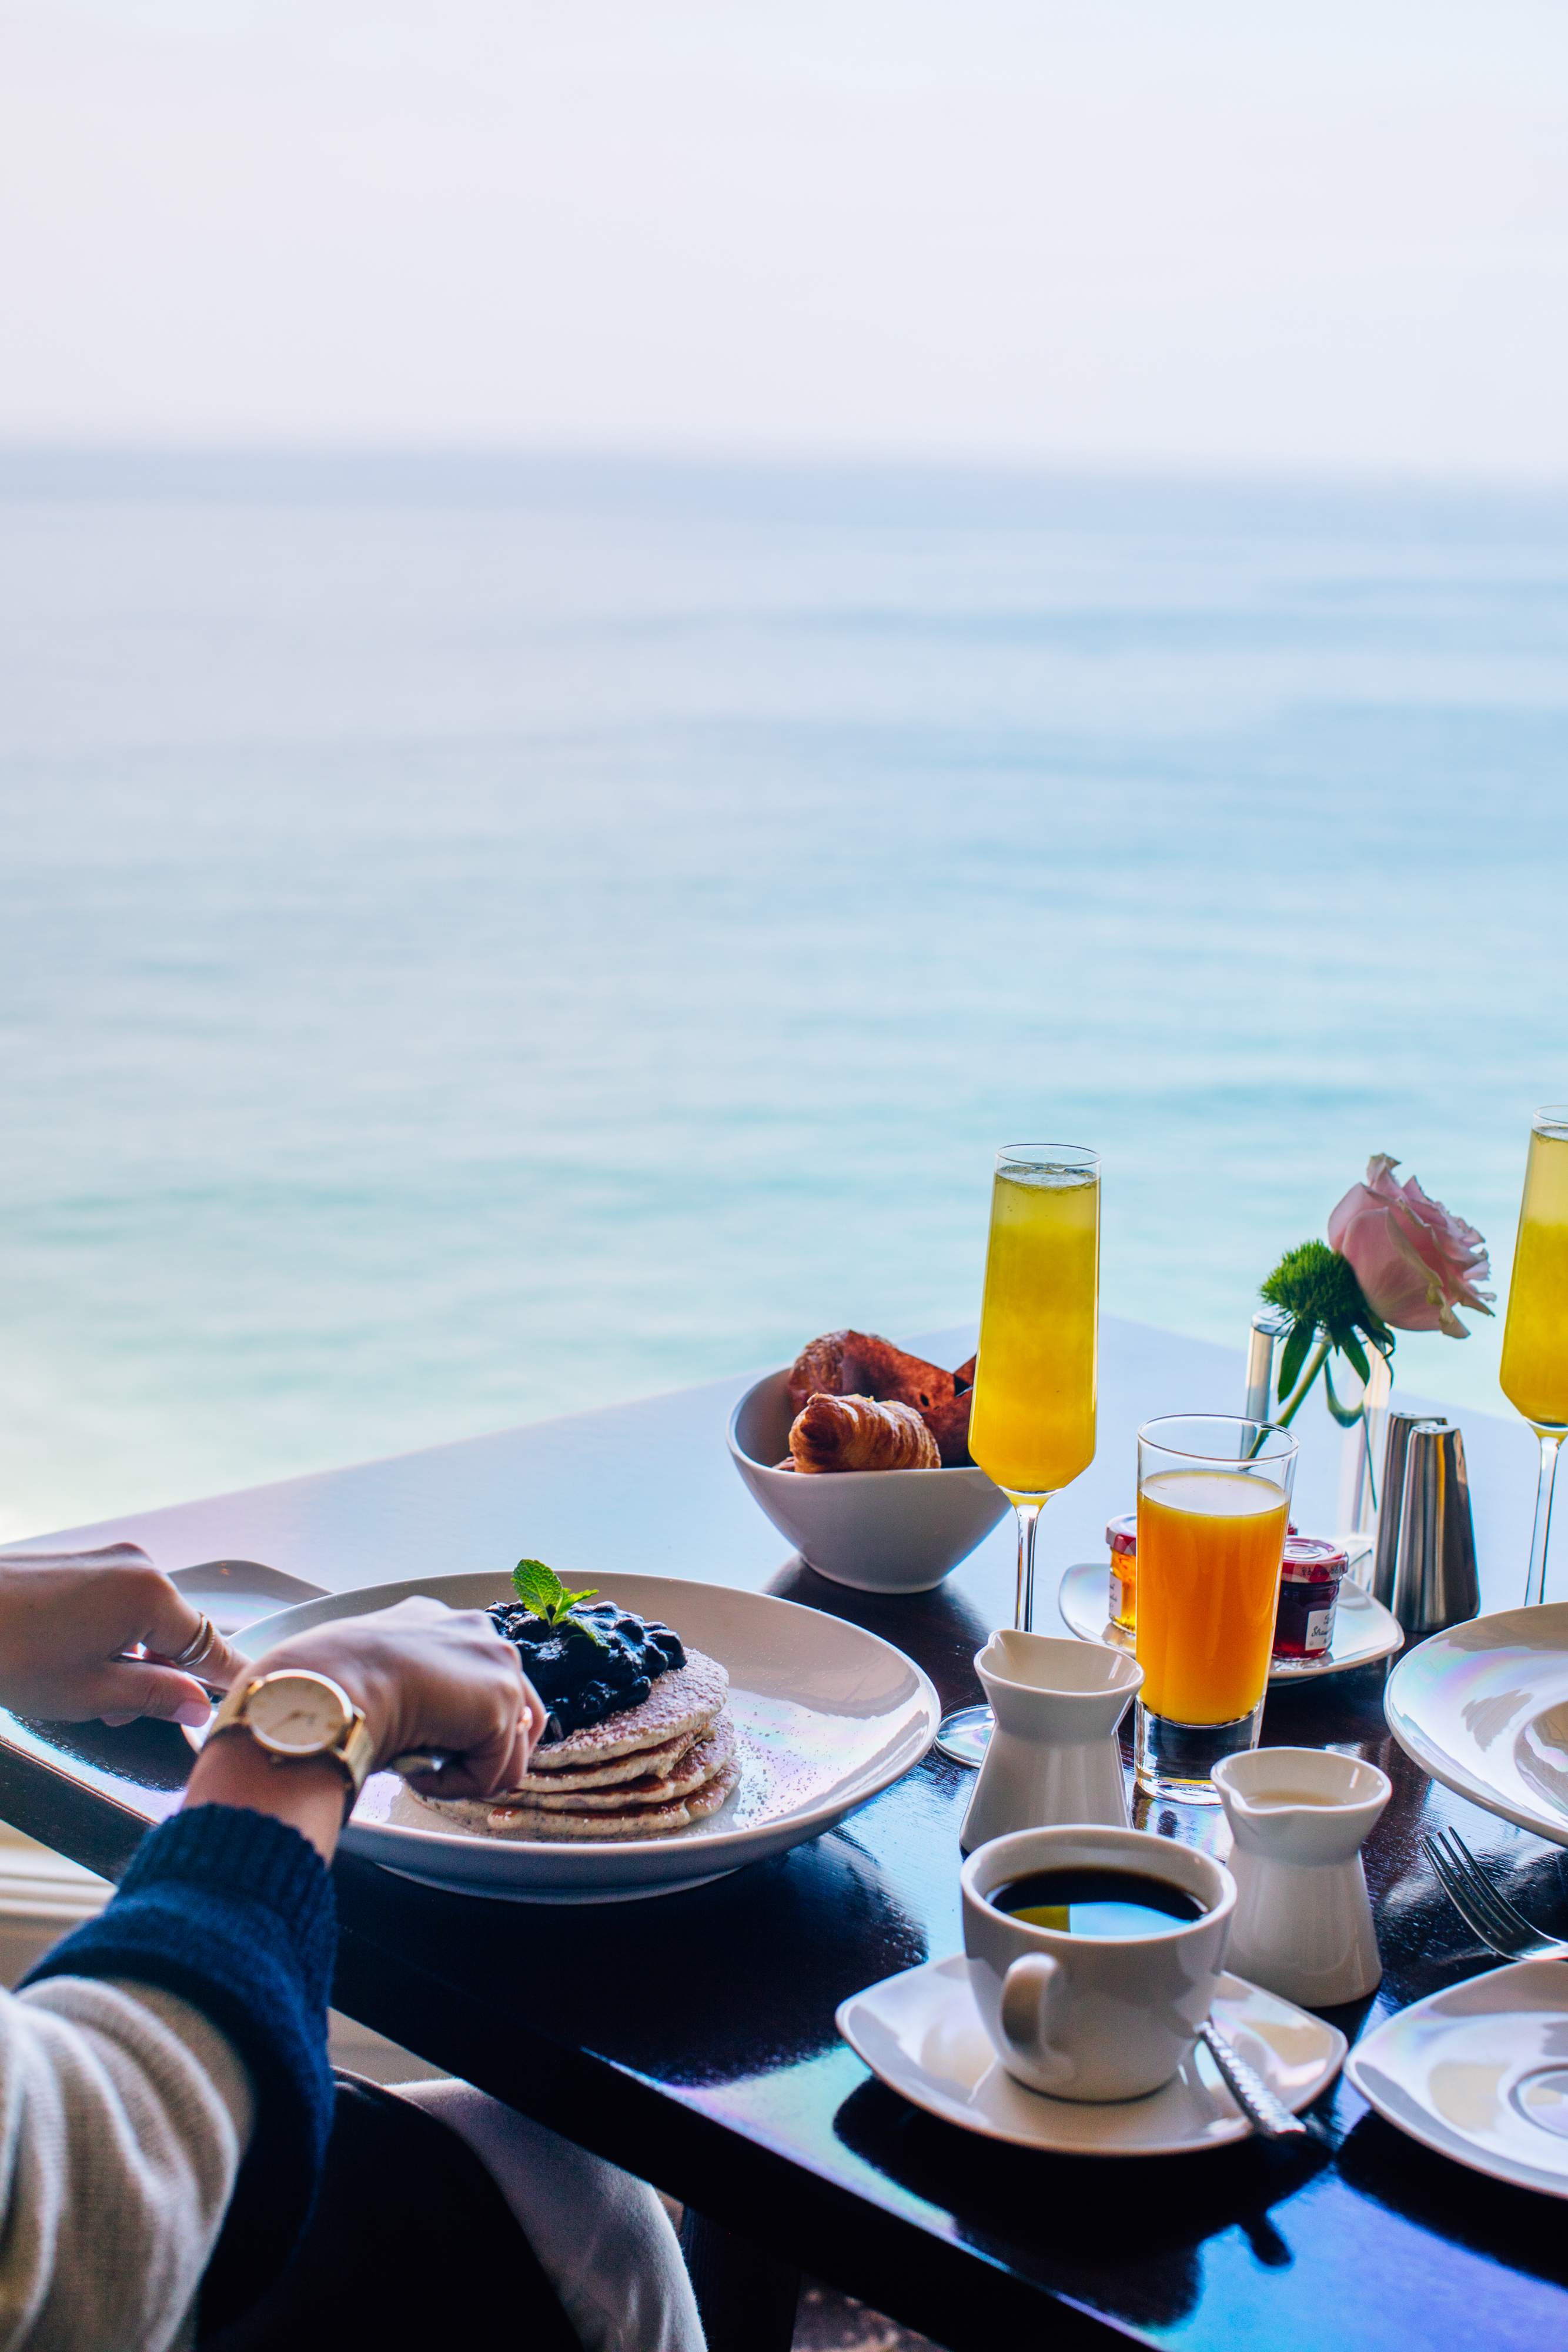 Breakfast and Ocean View in RAYA